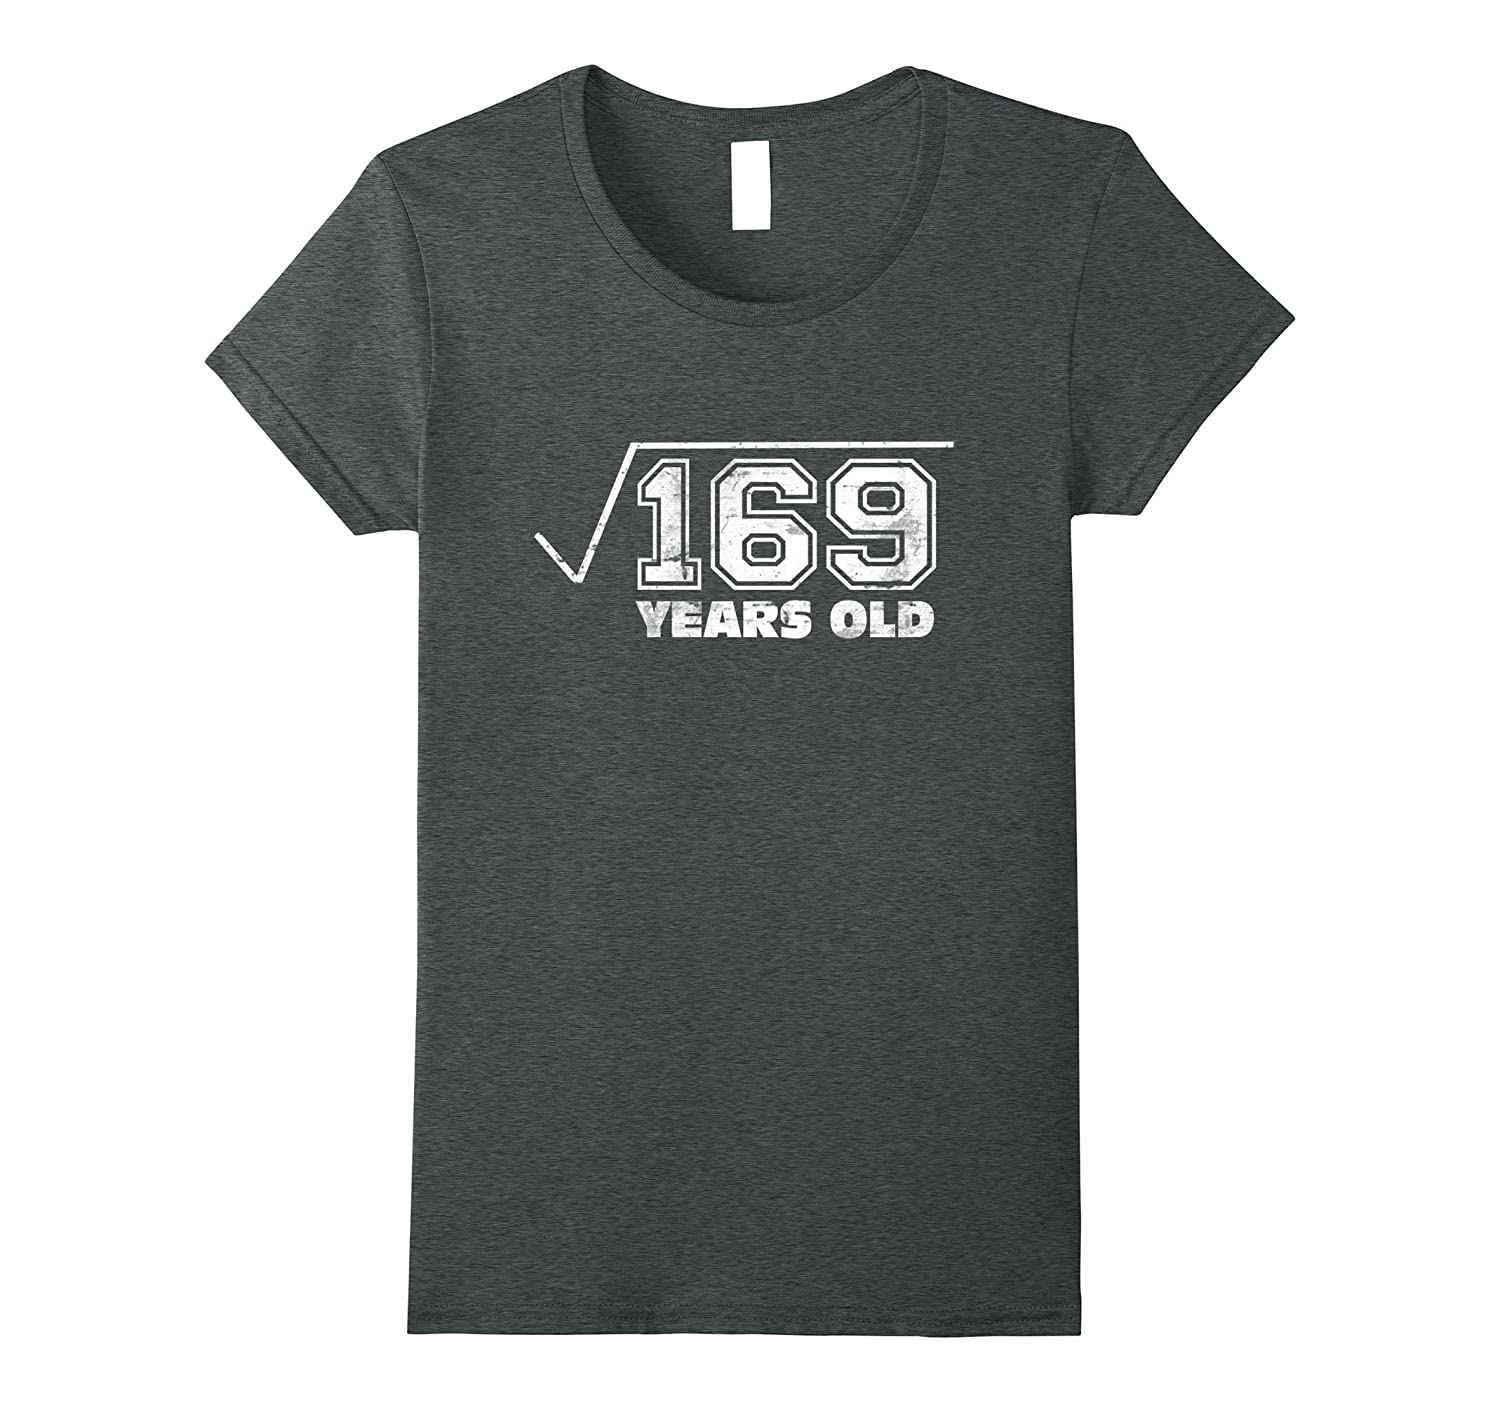 13th Birthday Shirt Gifts For Girls or Boys Outfits